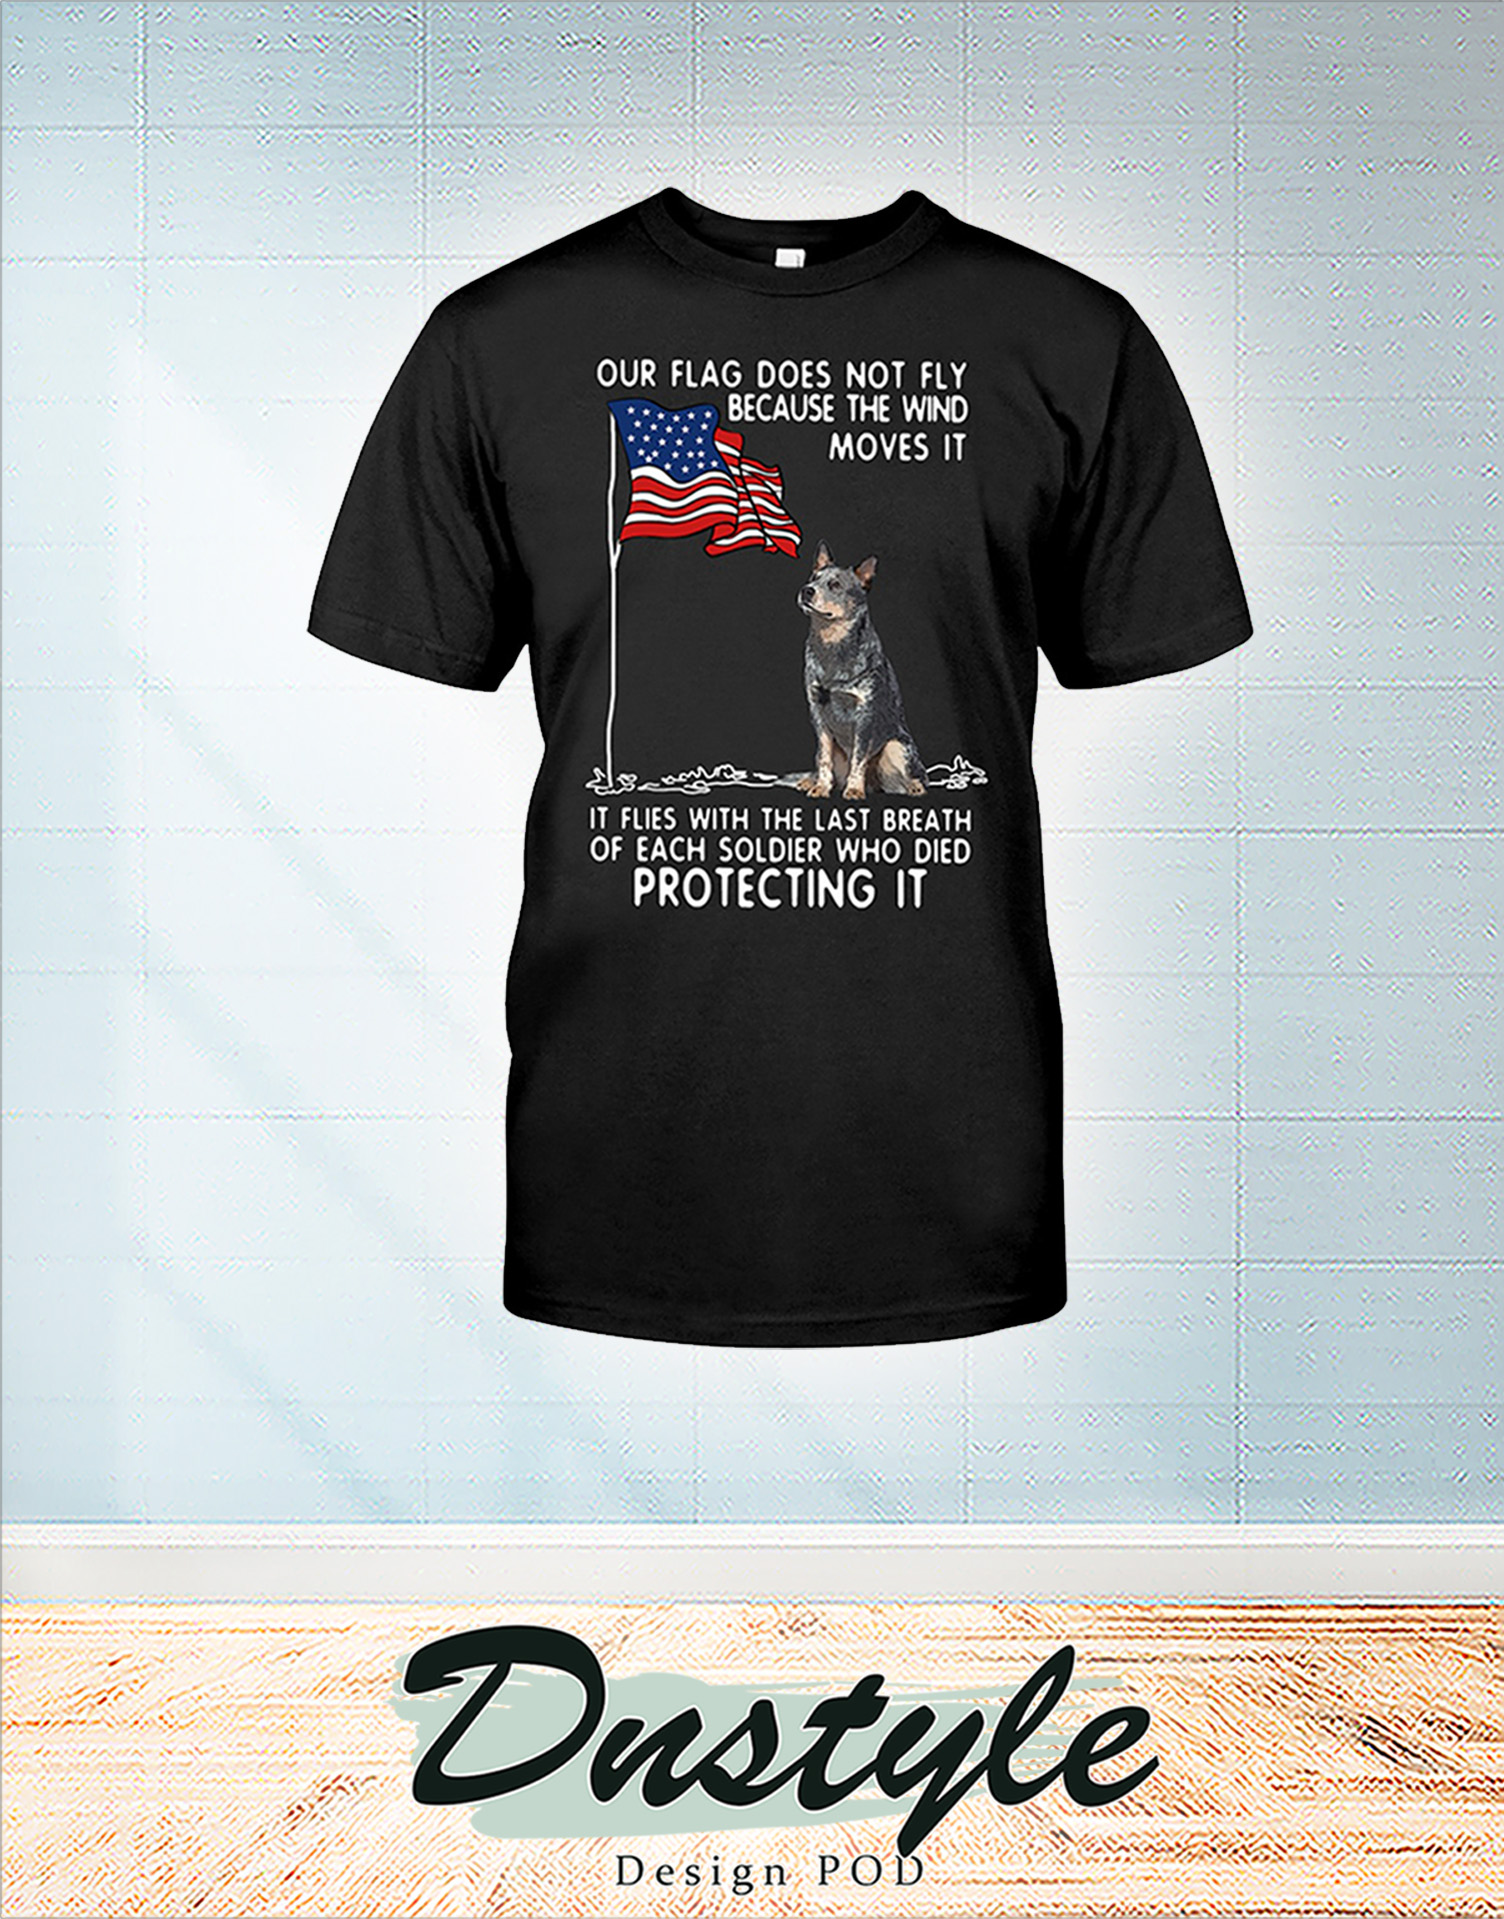 Blue Heeler USA soldier died our flag does not fly shirt